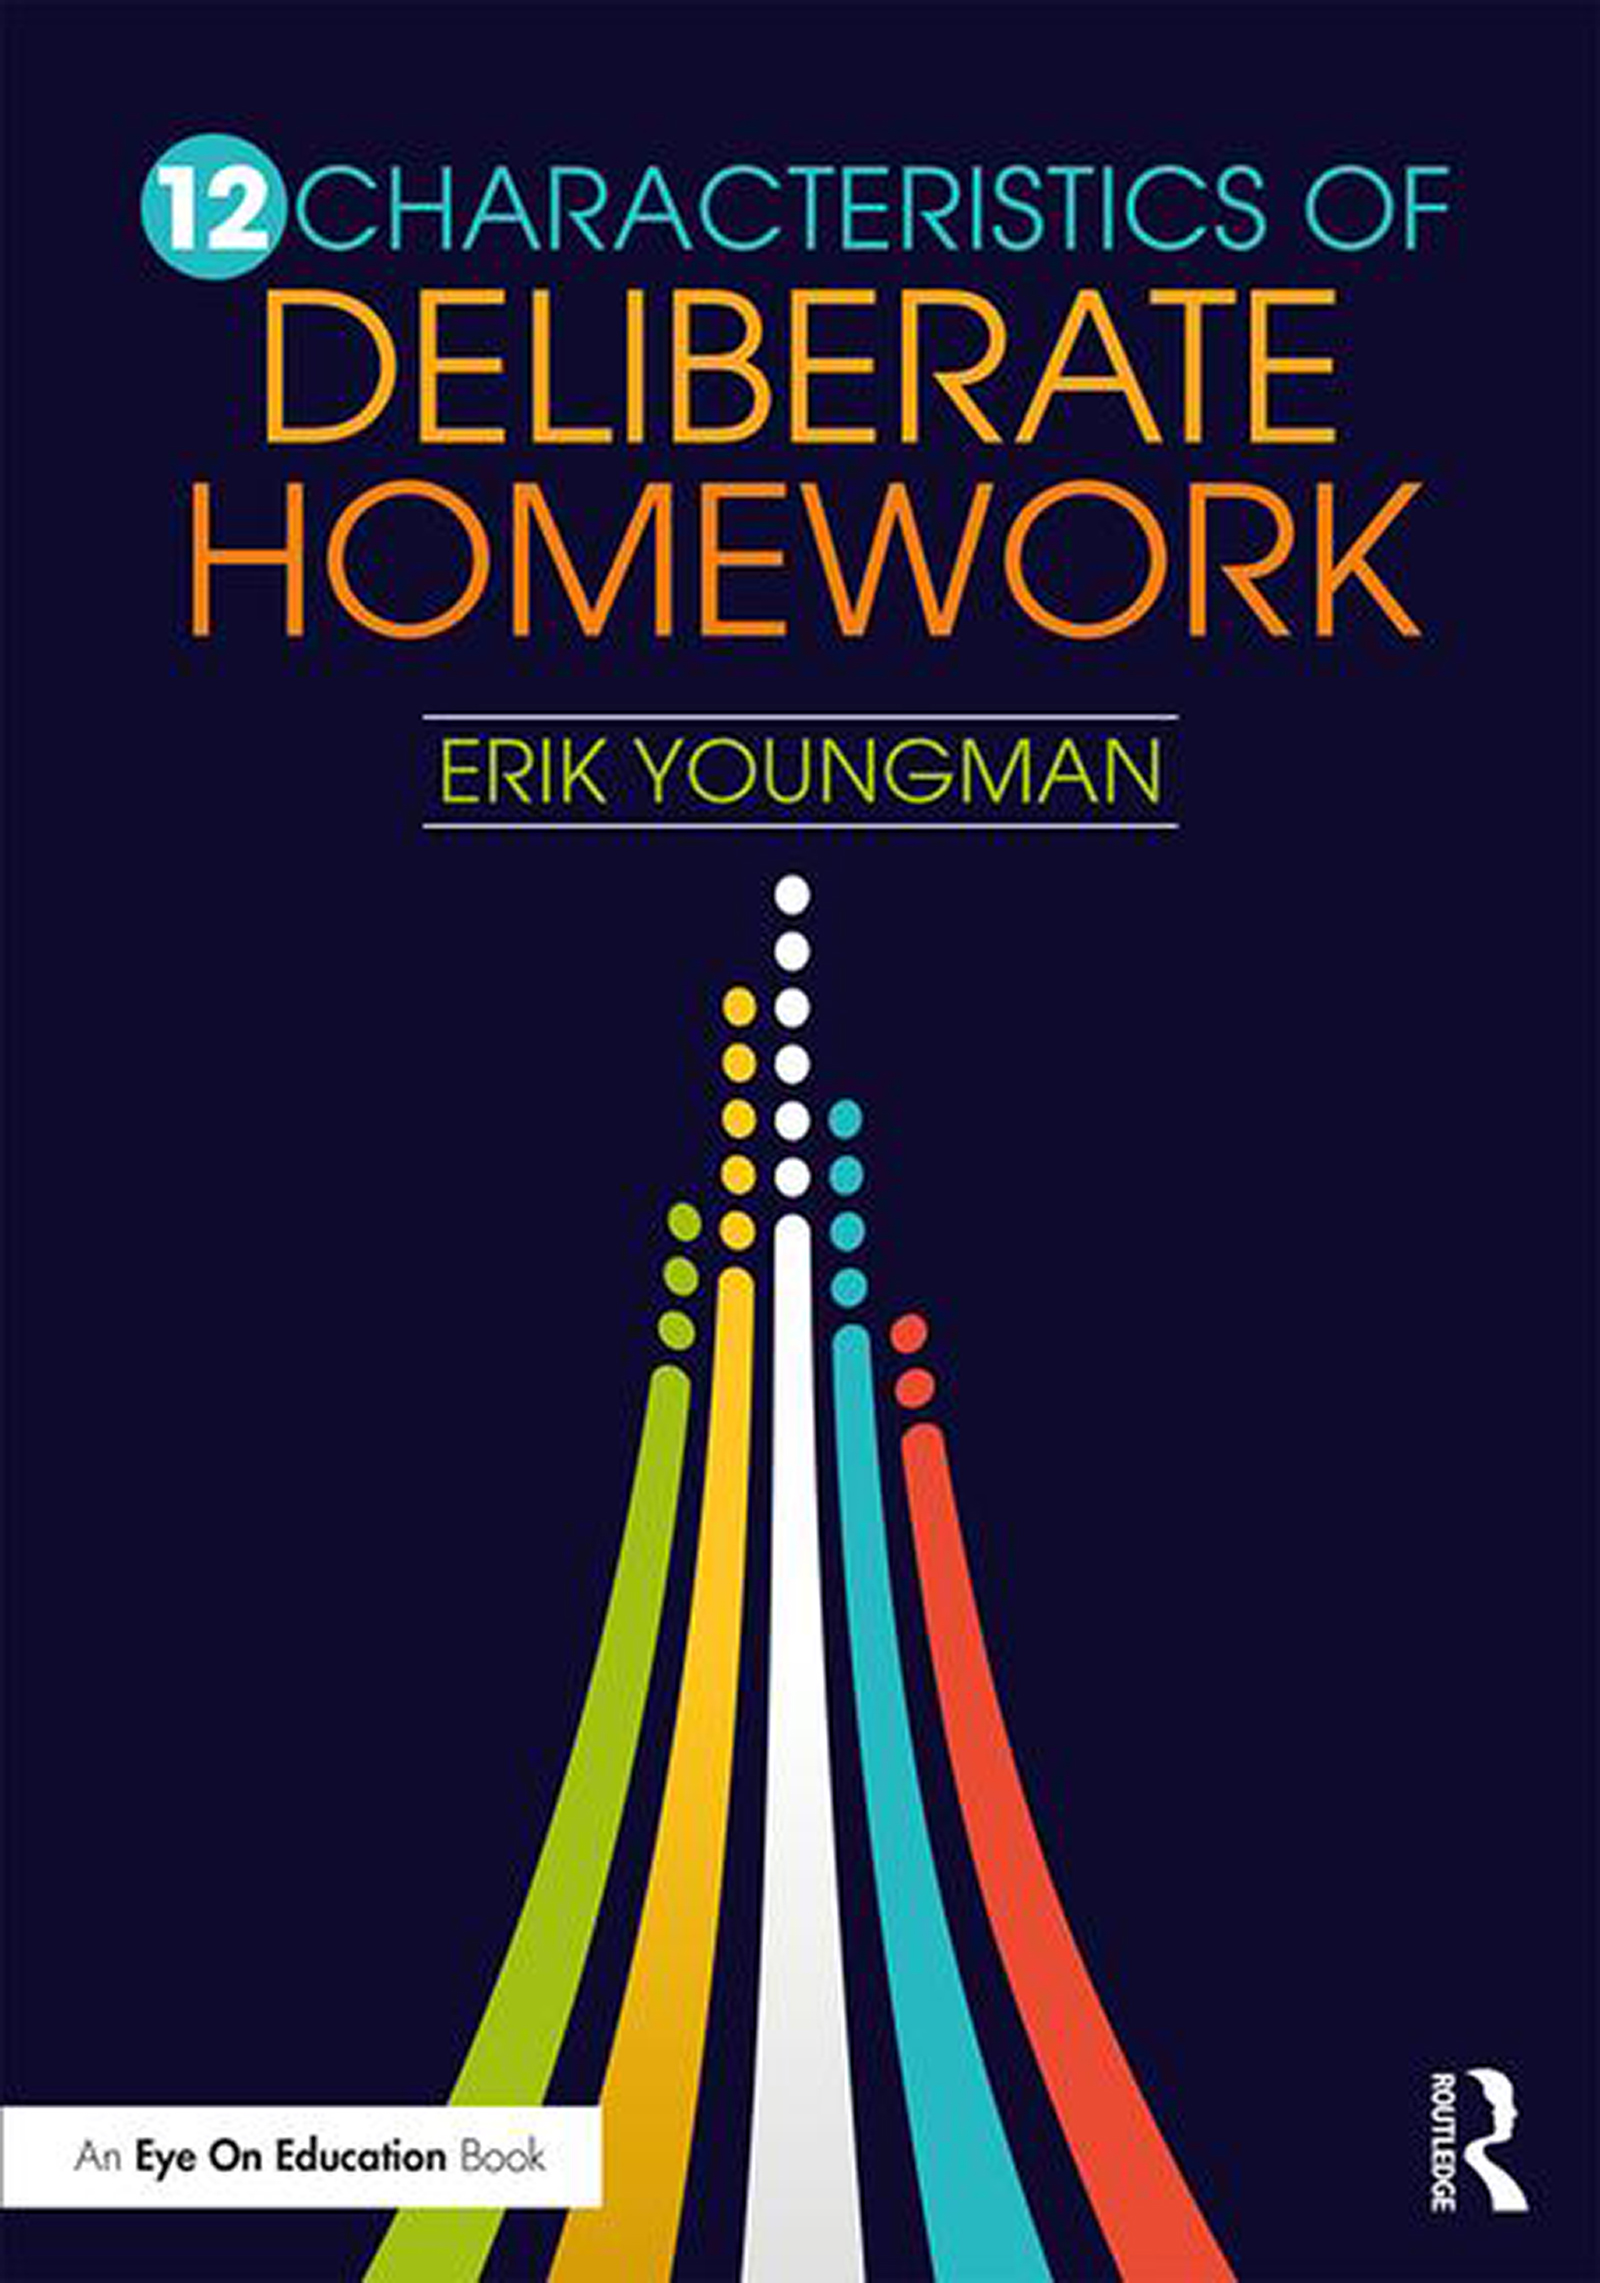 12 Characteristics of Deliberate Homework book cover